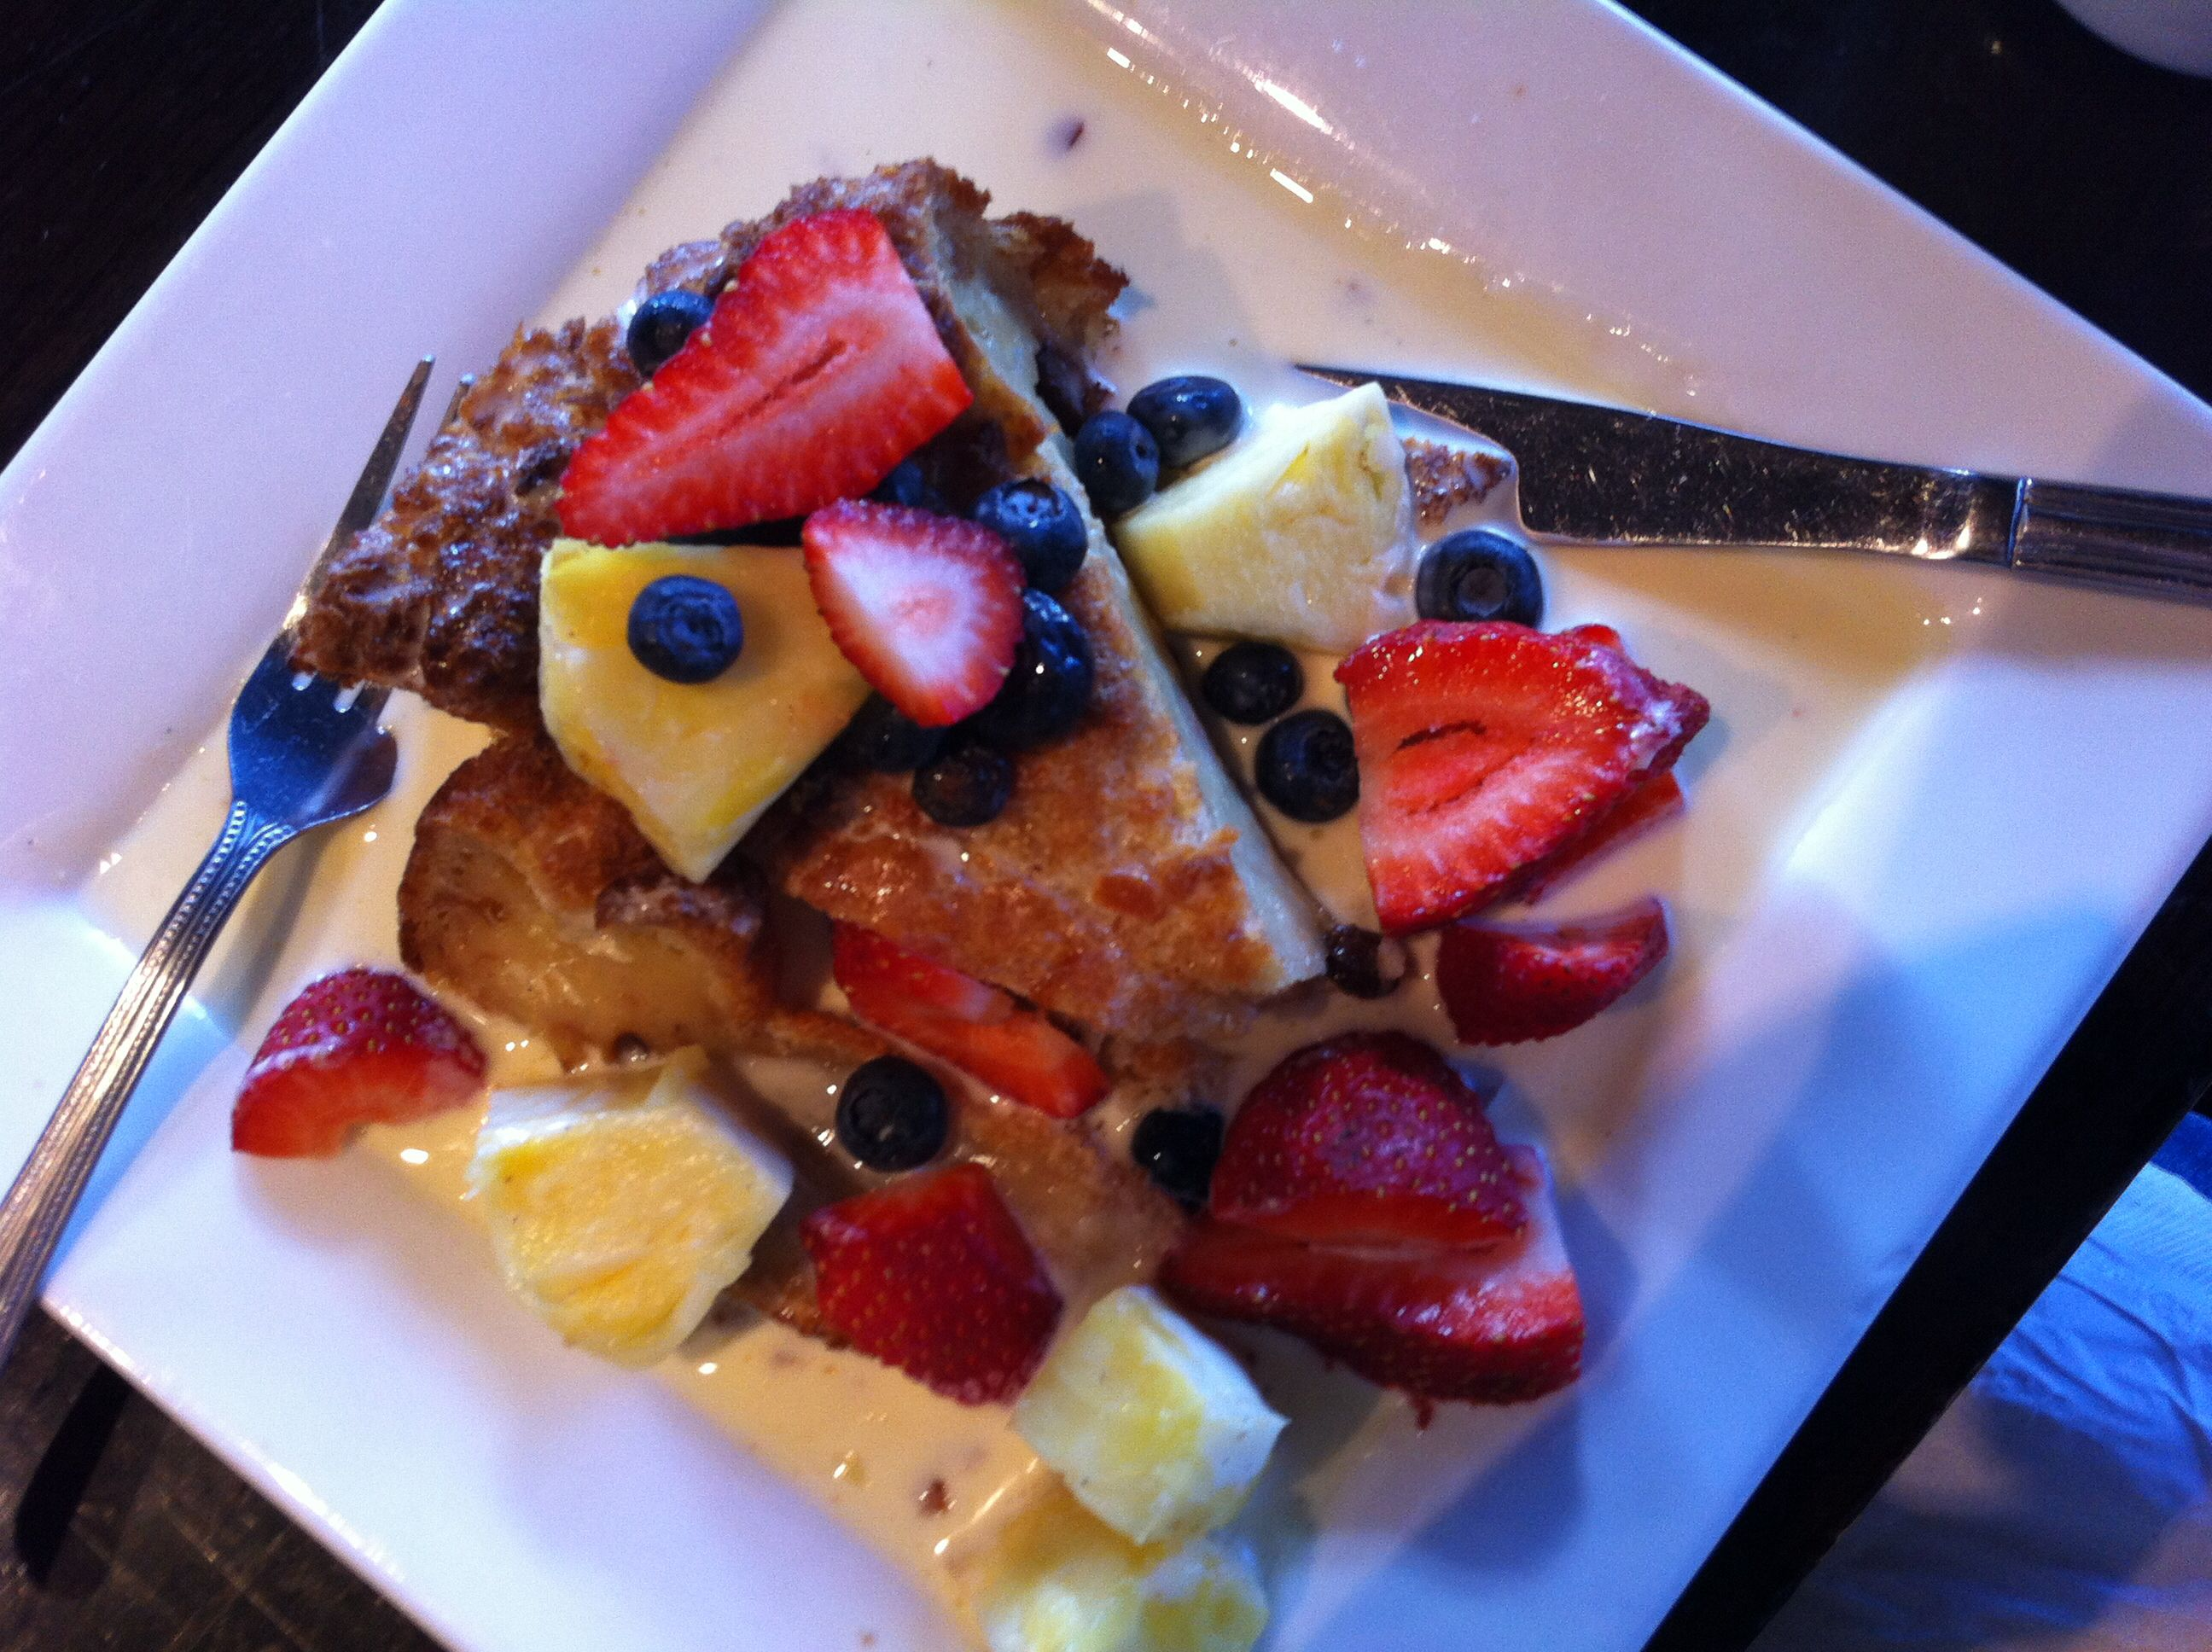 St. Clair - Restaurant: Pain Perdu - Pain Perdu 736 St Clair Ave W, Toronto, ON M6C 1B7 Open from 8 am